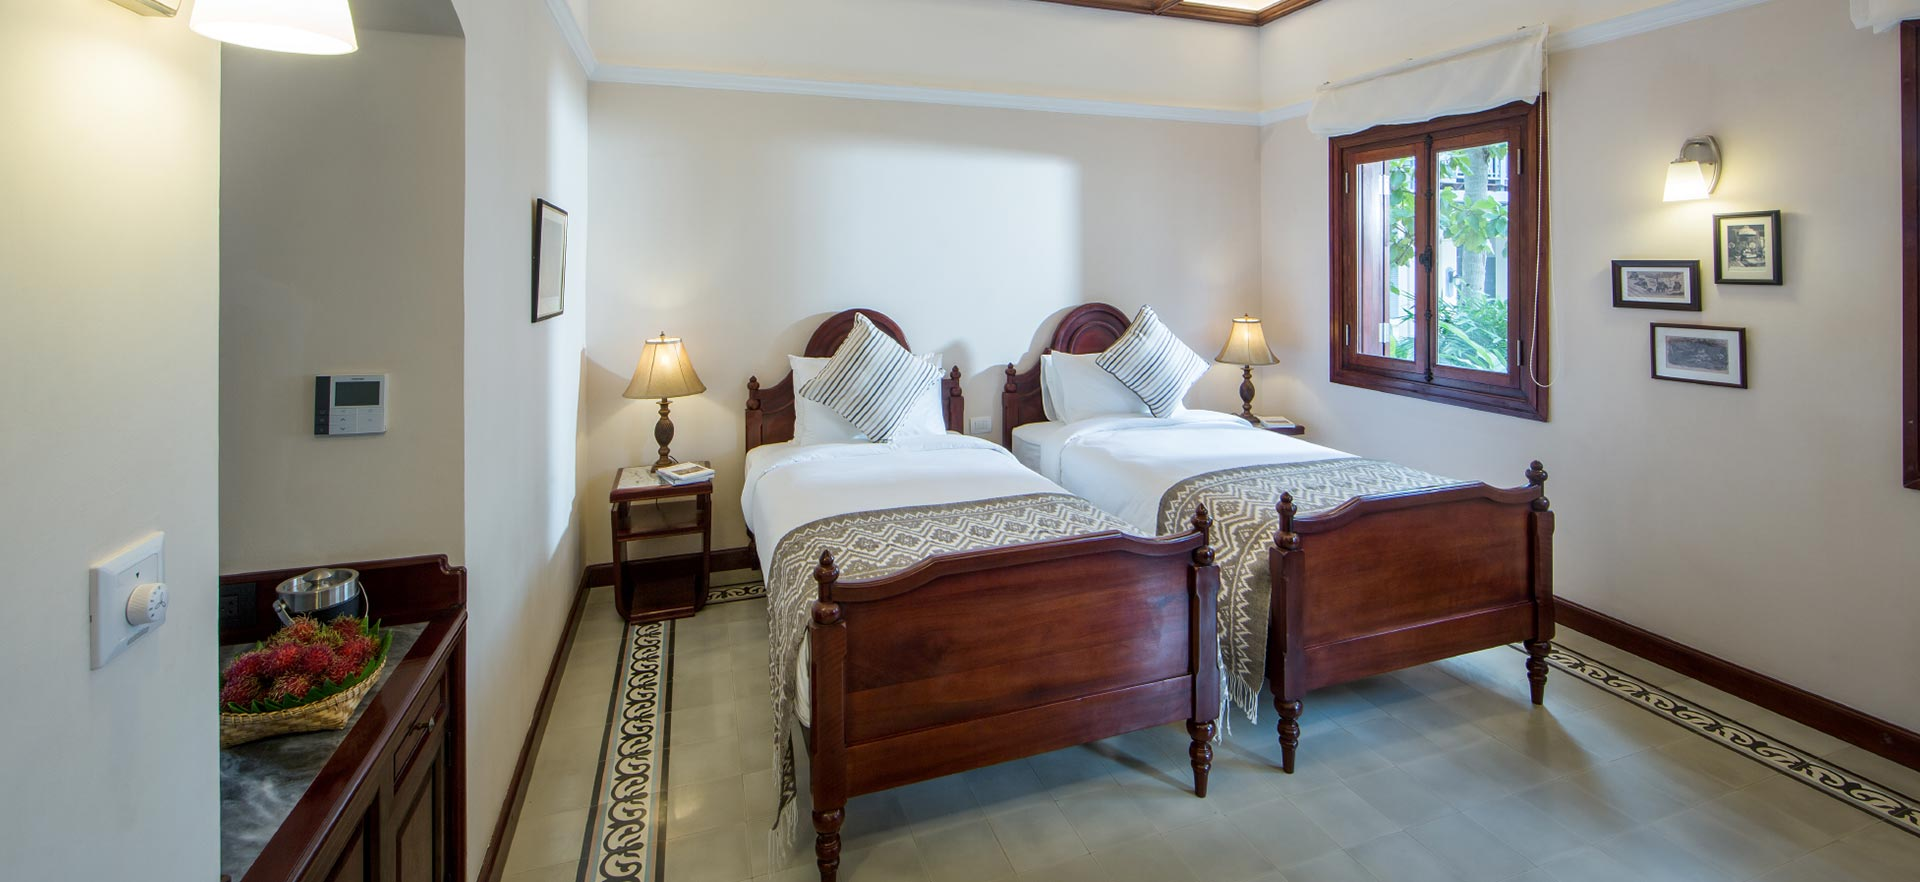 Double bed room Le Bel Air Resort